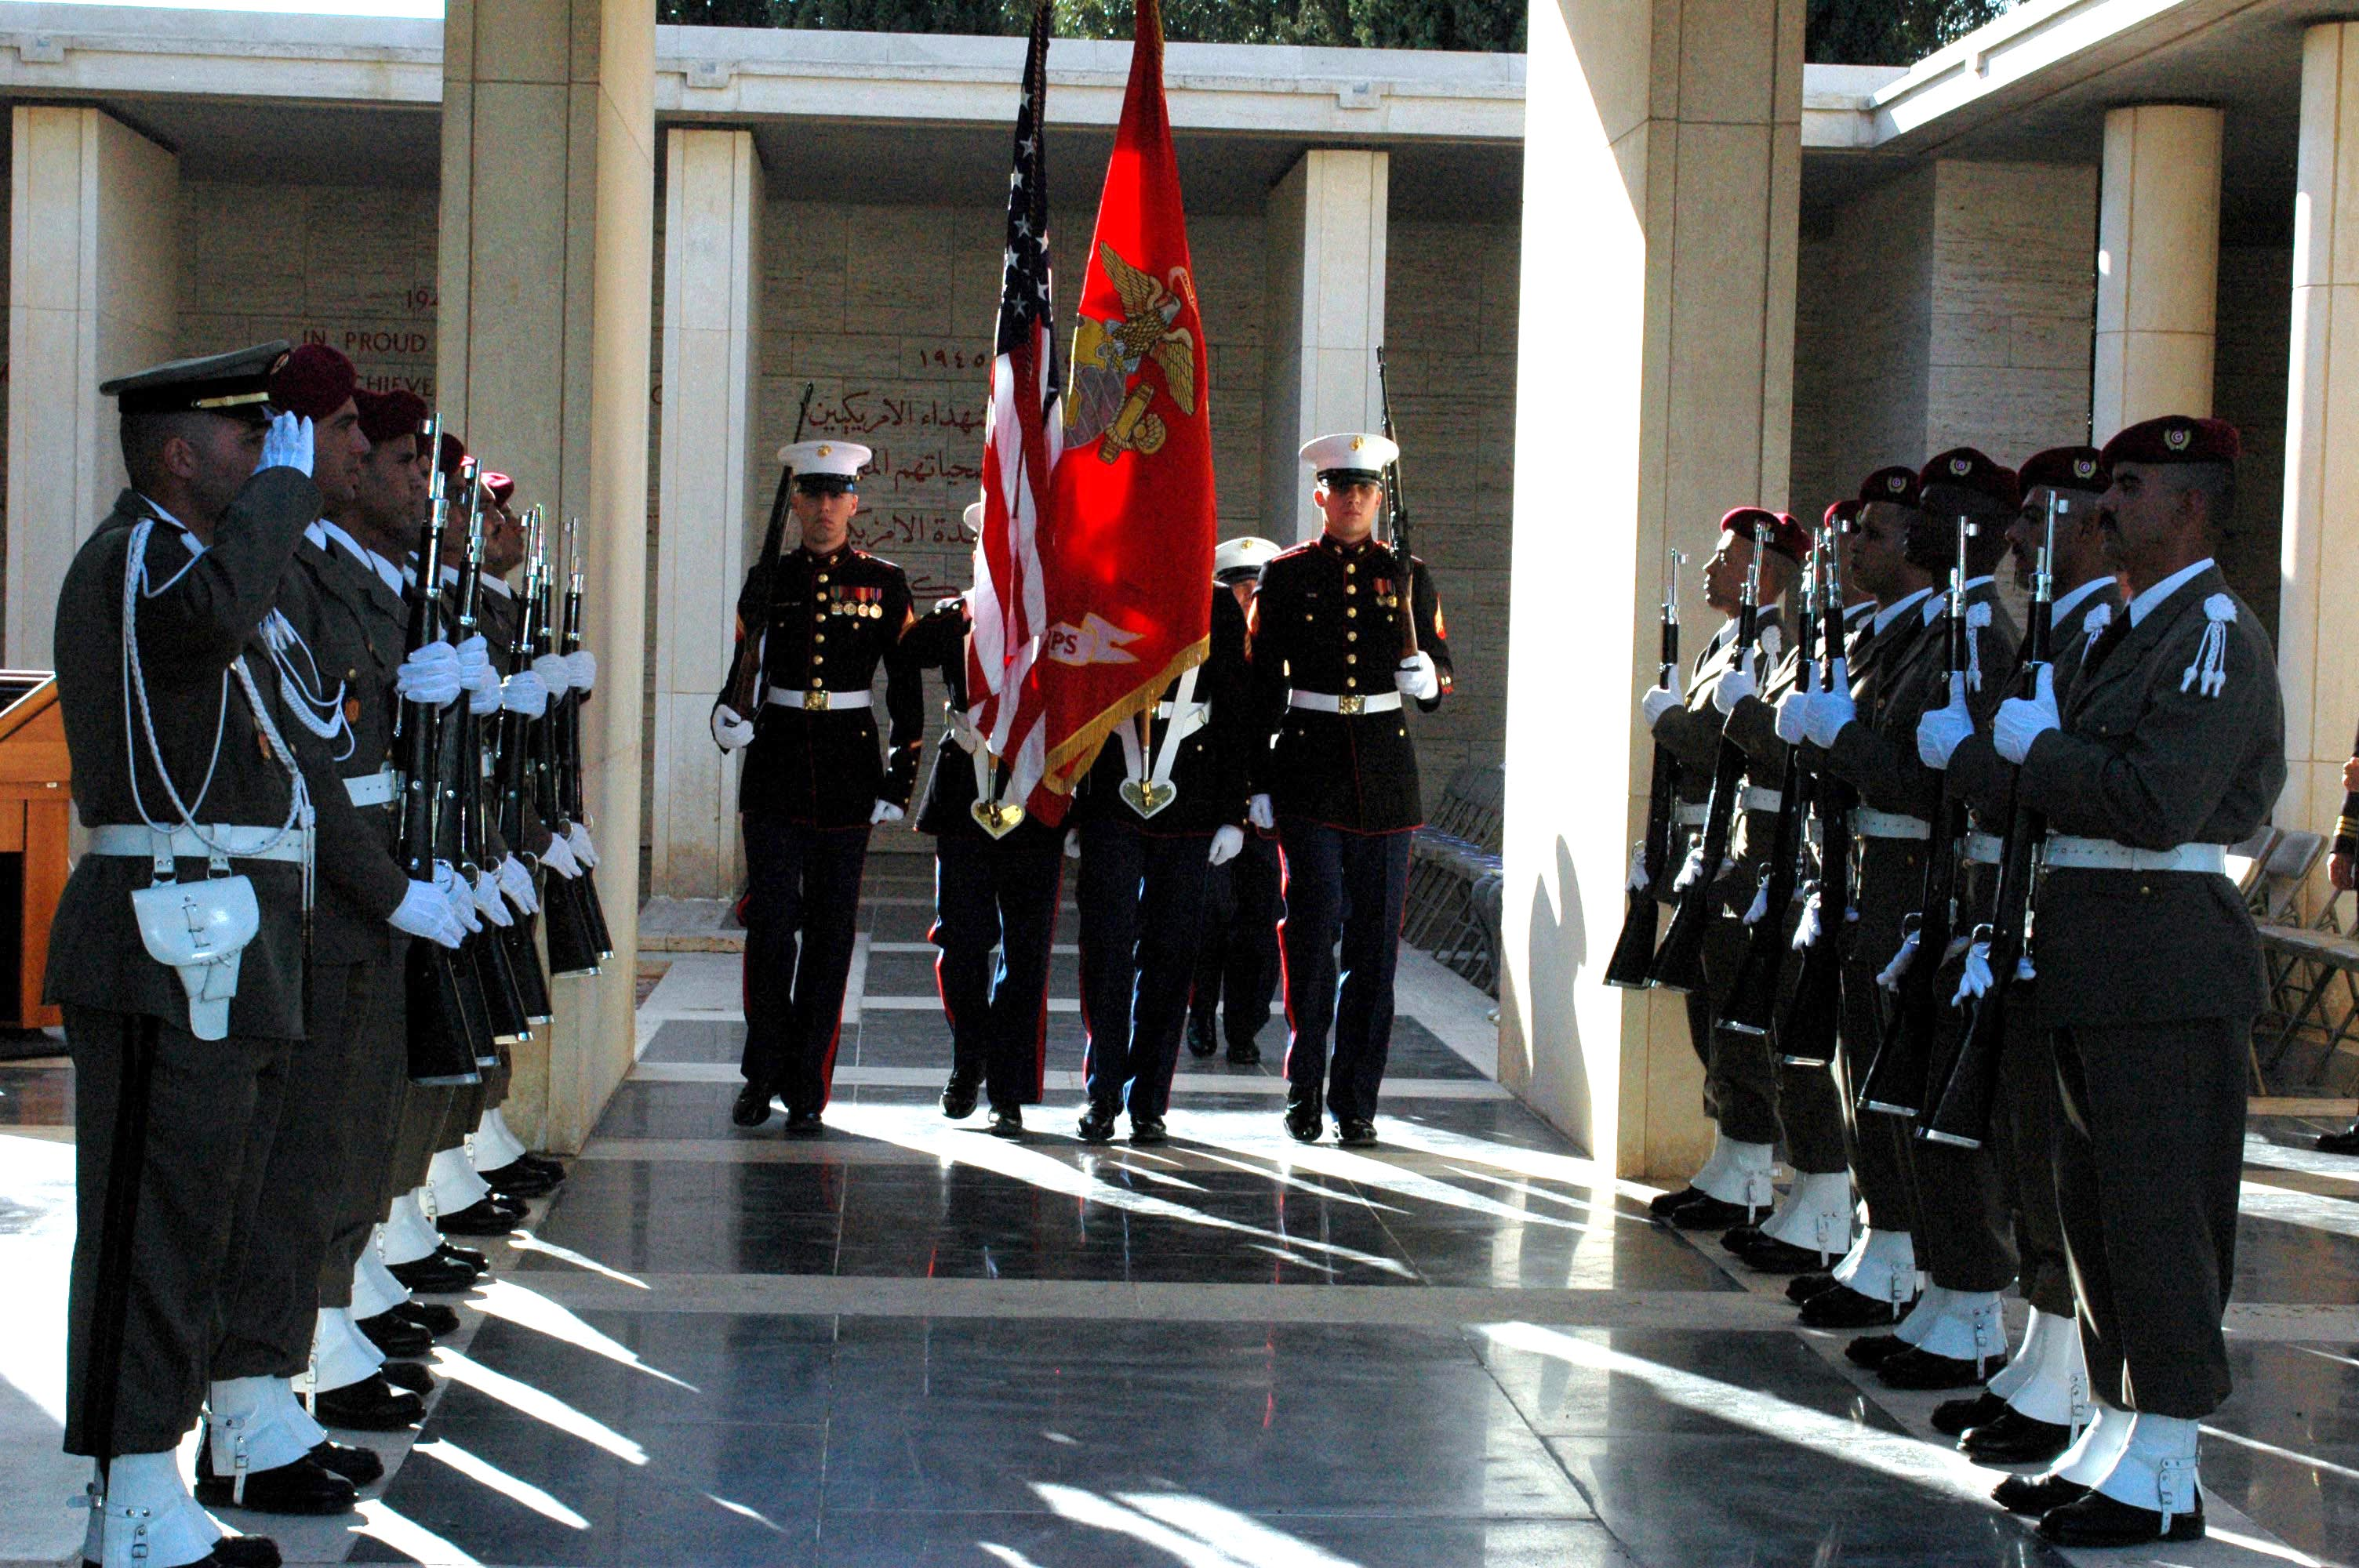 File:US Navy 061117-N-6544L-005 The Marine Corps color guard ...